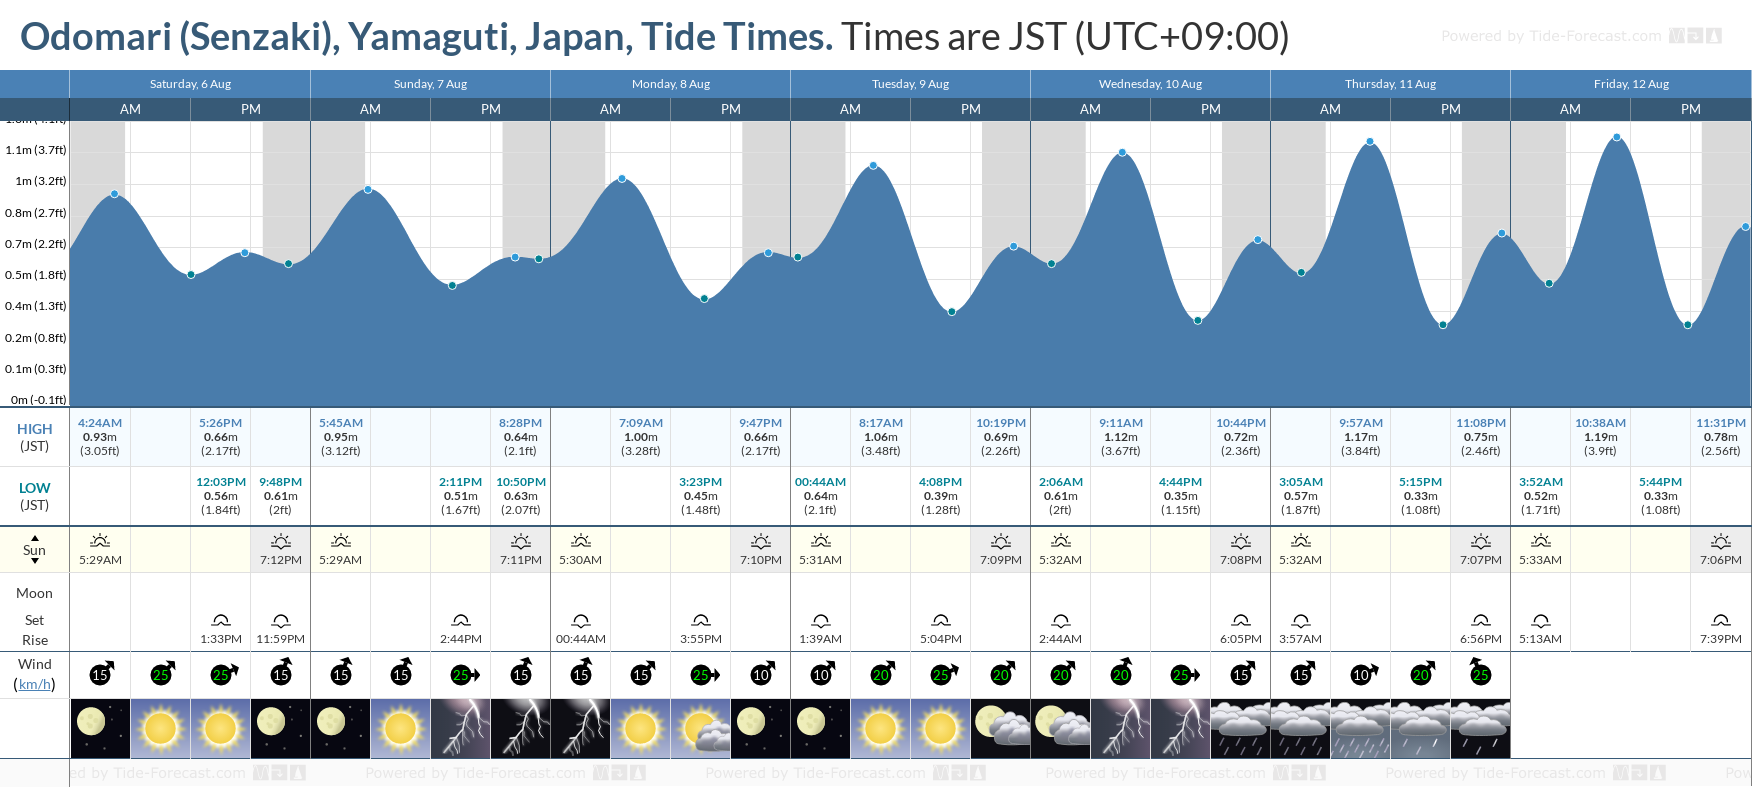 Odomari (Senzaki), Yamaguti, Japan Tide Chart including high and low tide tide times for the next 7 days